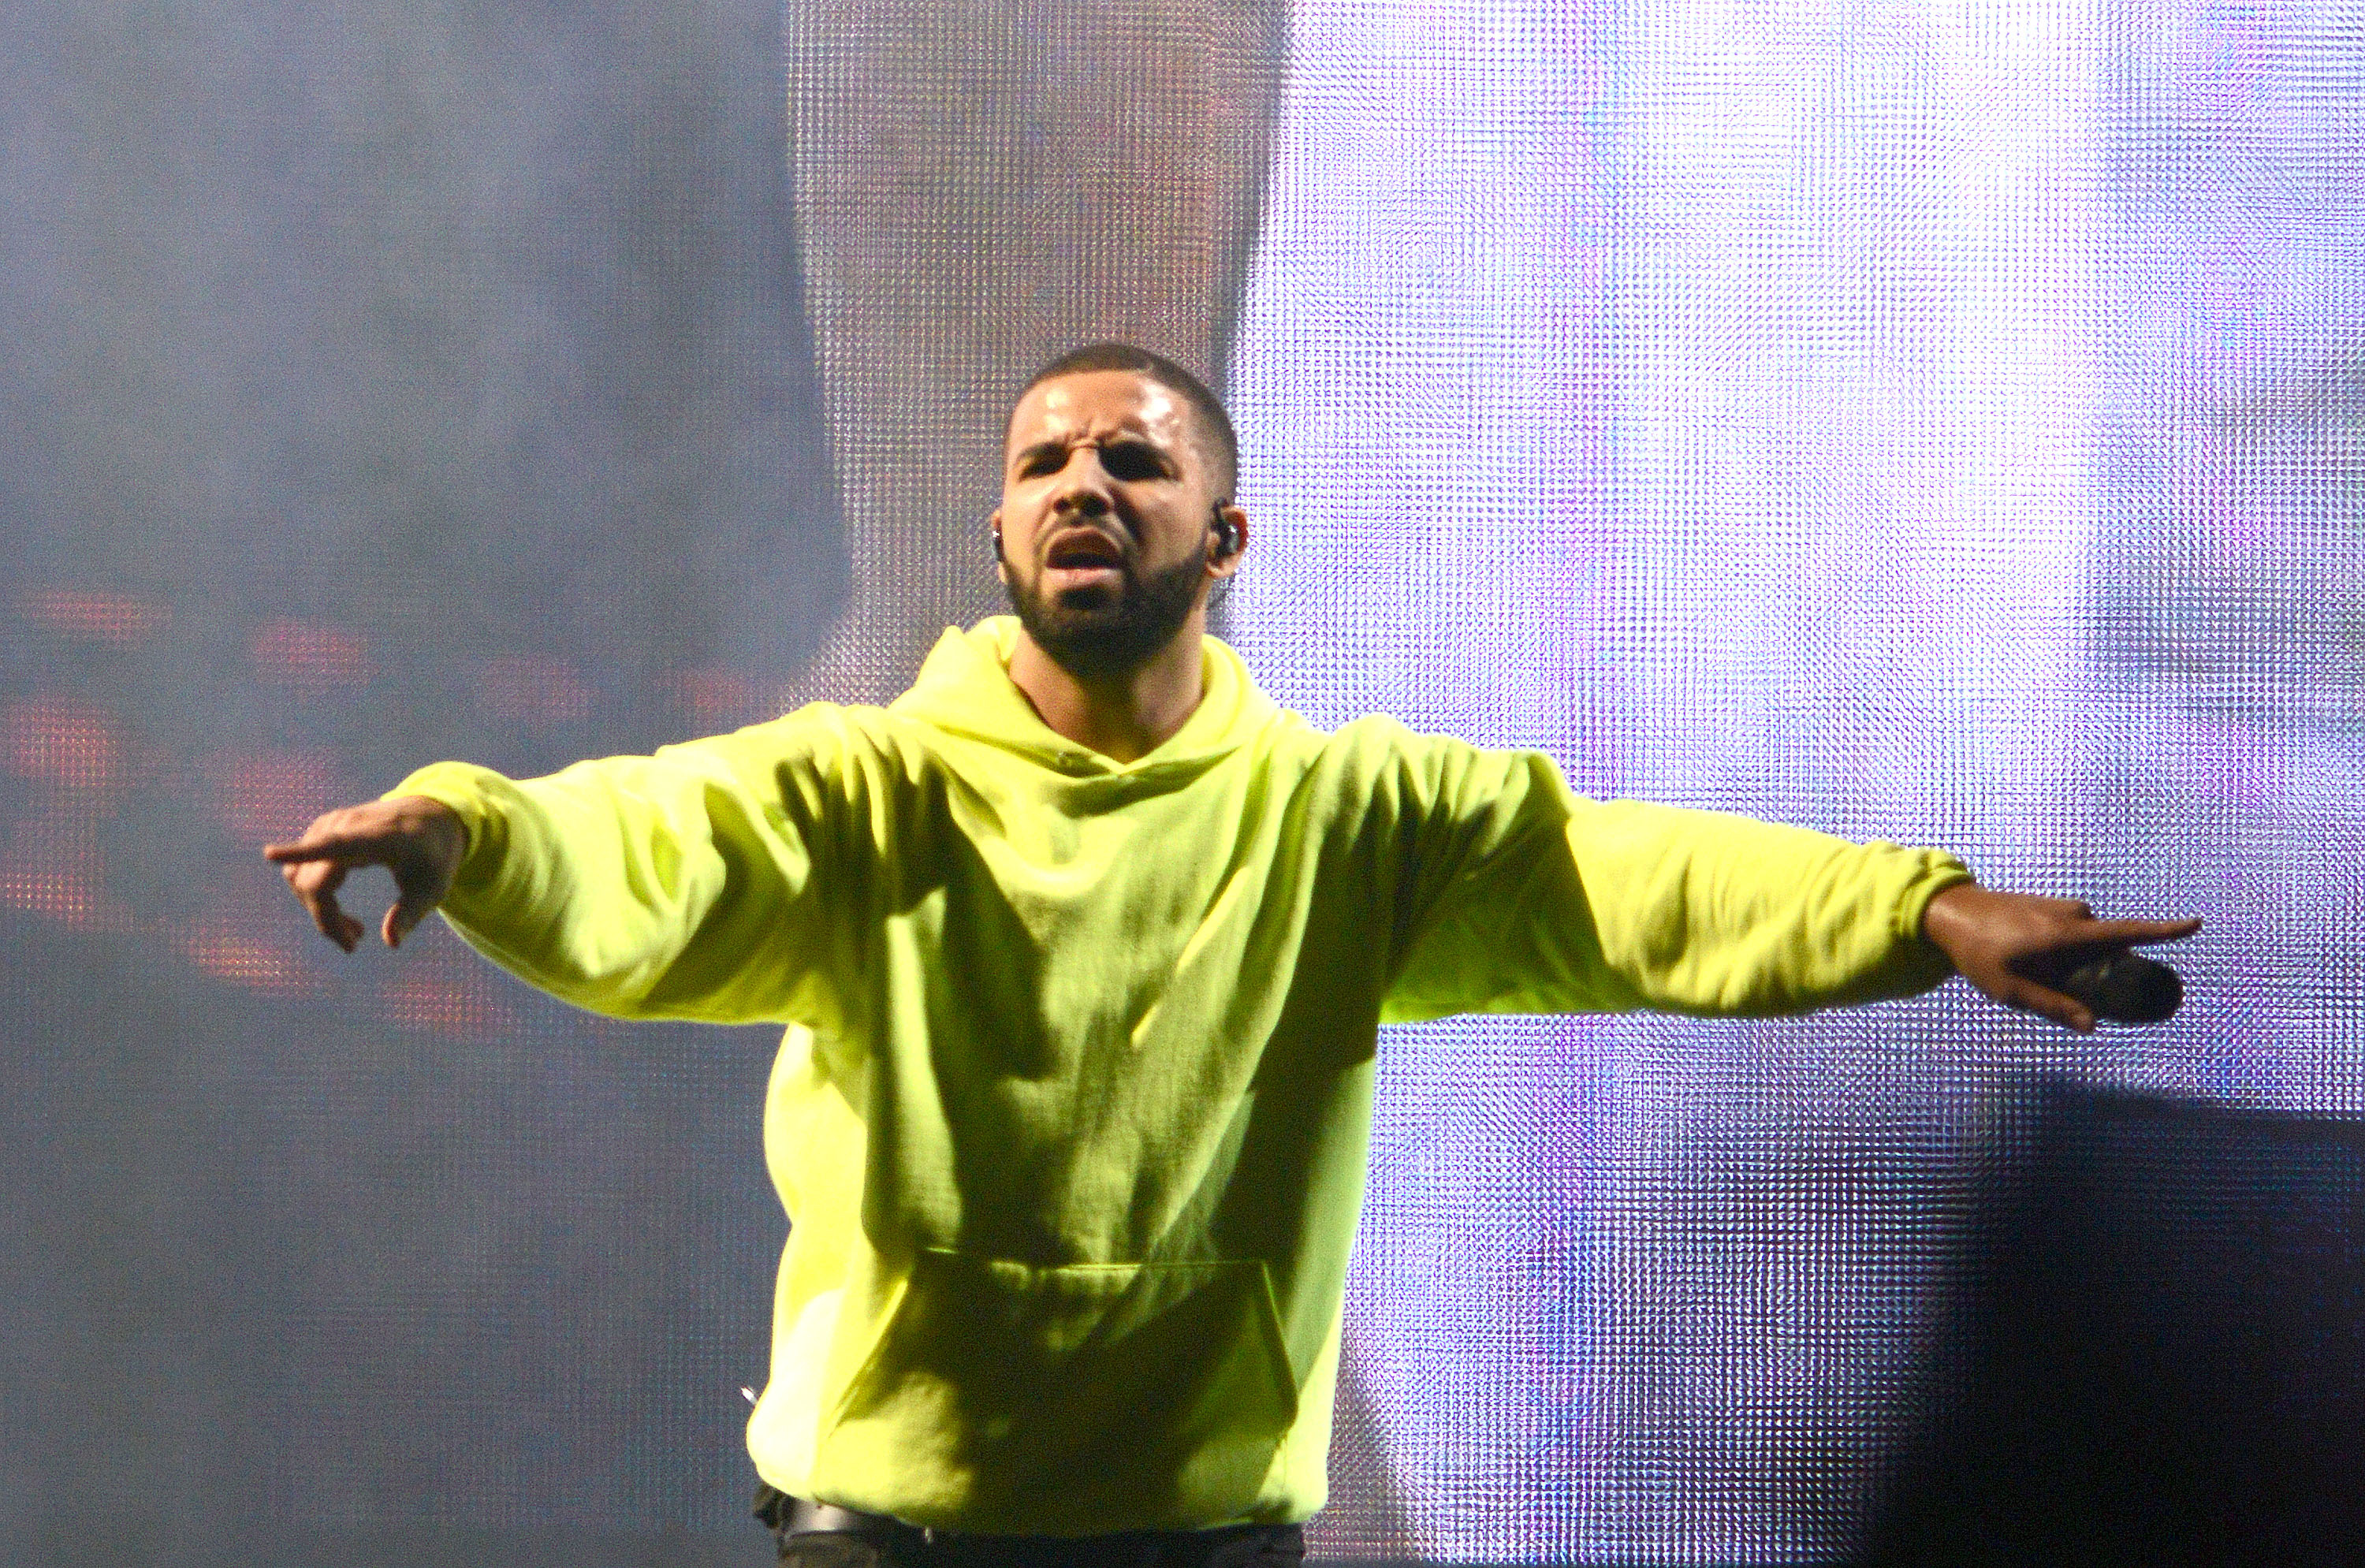 Drake performs during the 2015 Governors Ball Music Festival